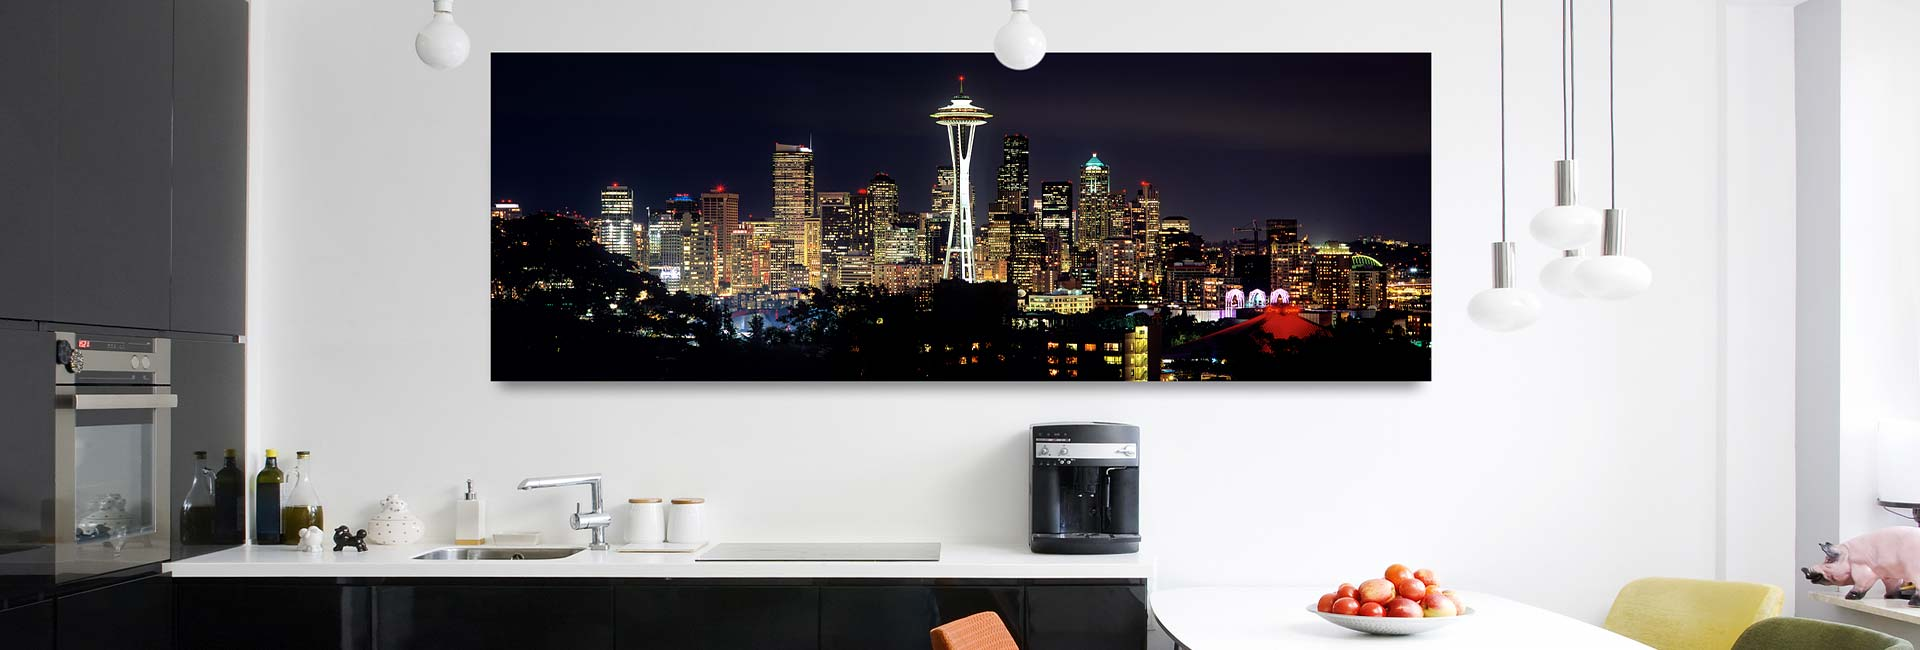 Panoramic skyline of Seattle at night – high-definition gallery print with acrylic float mount